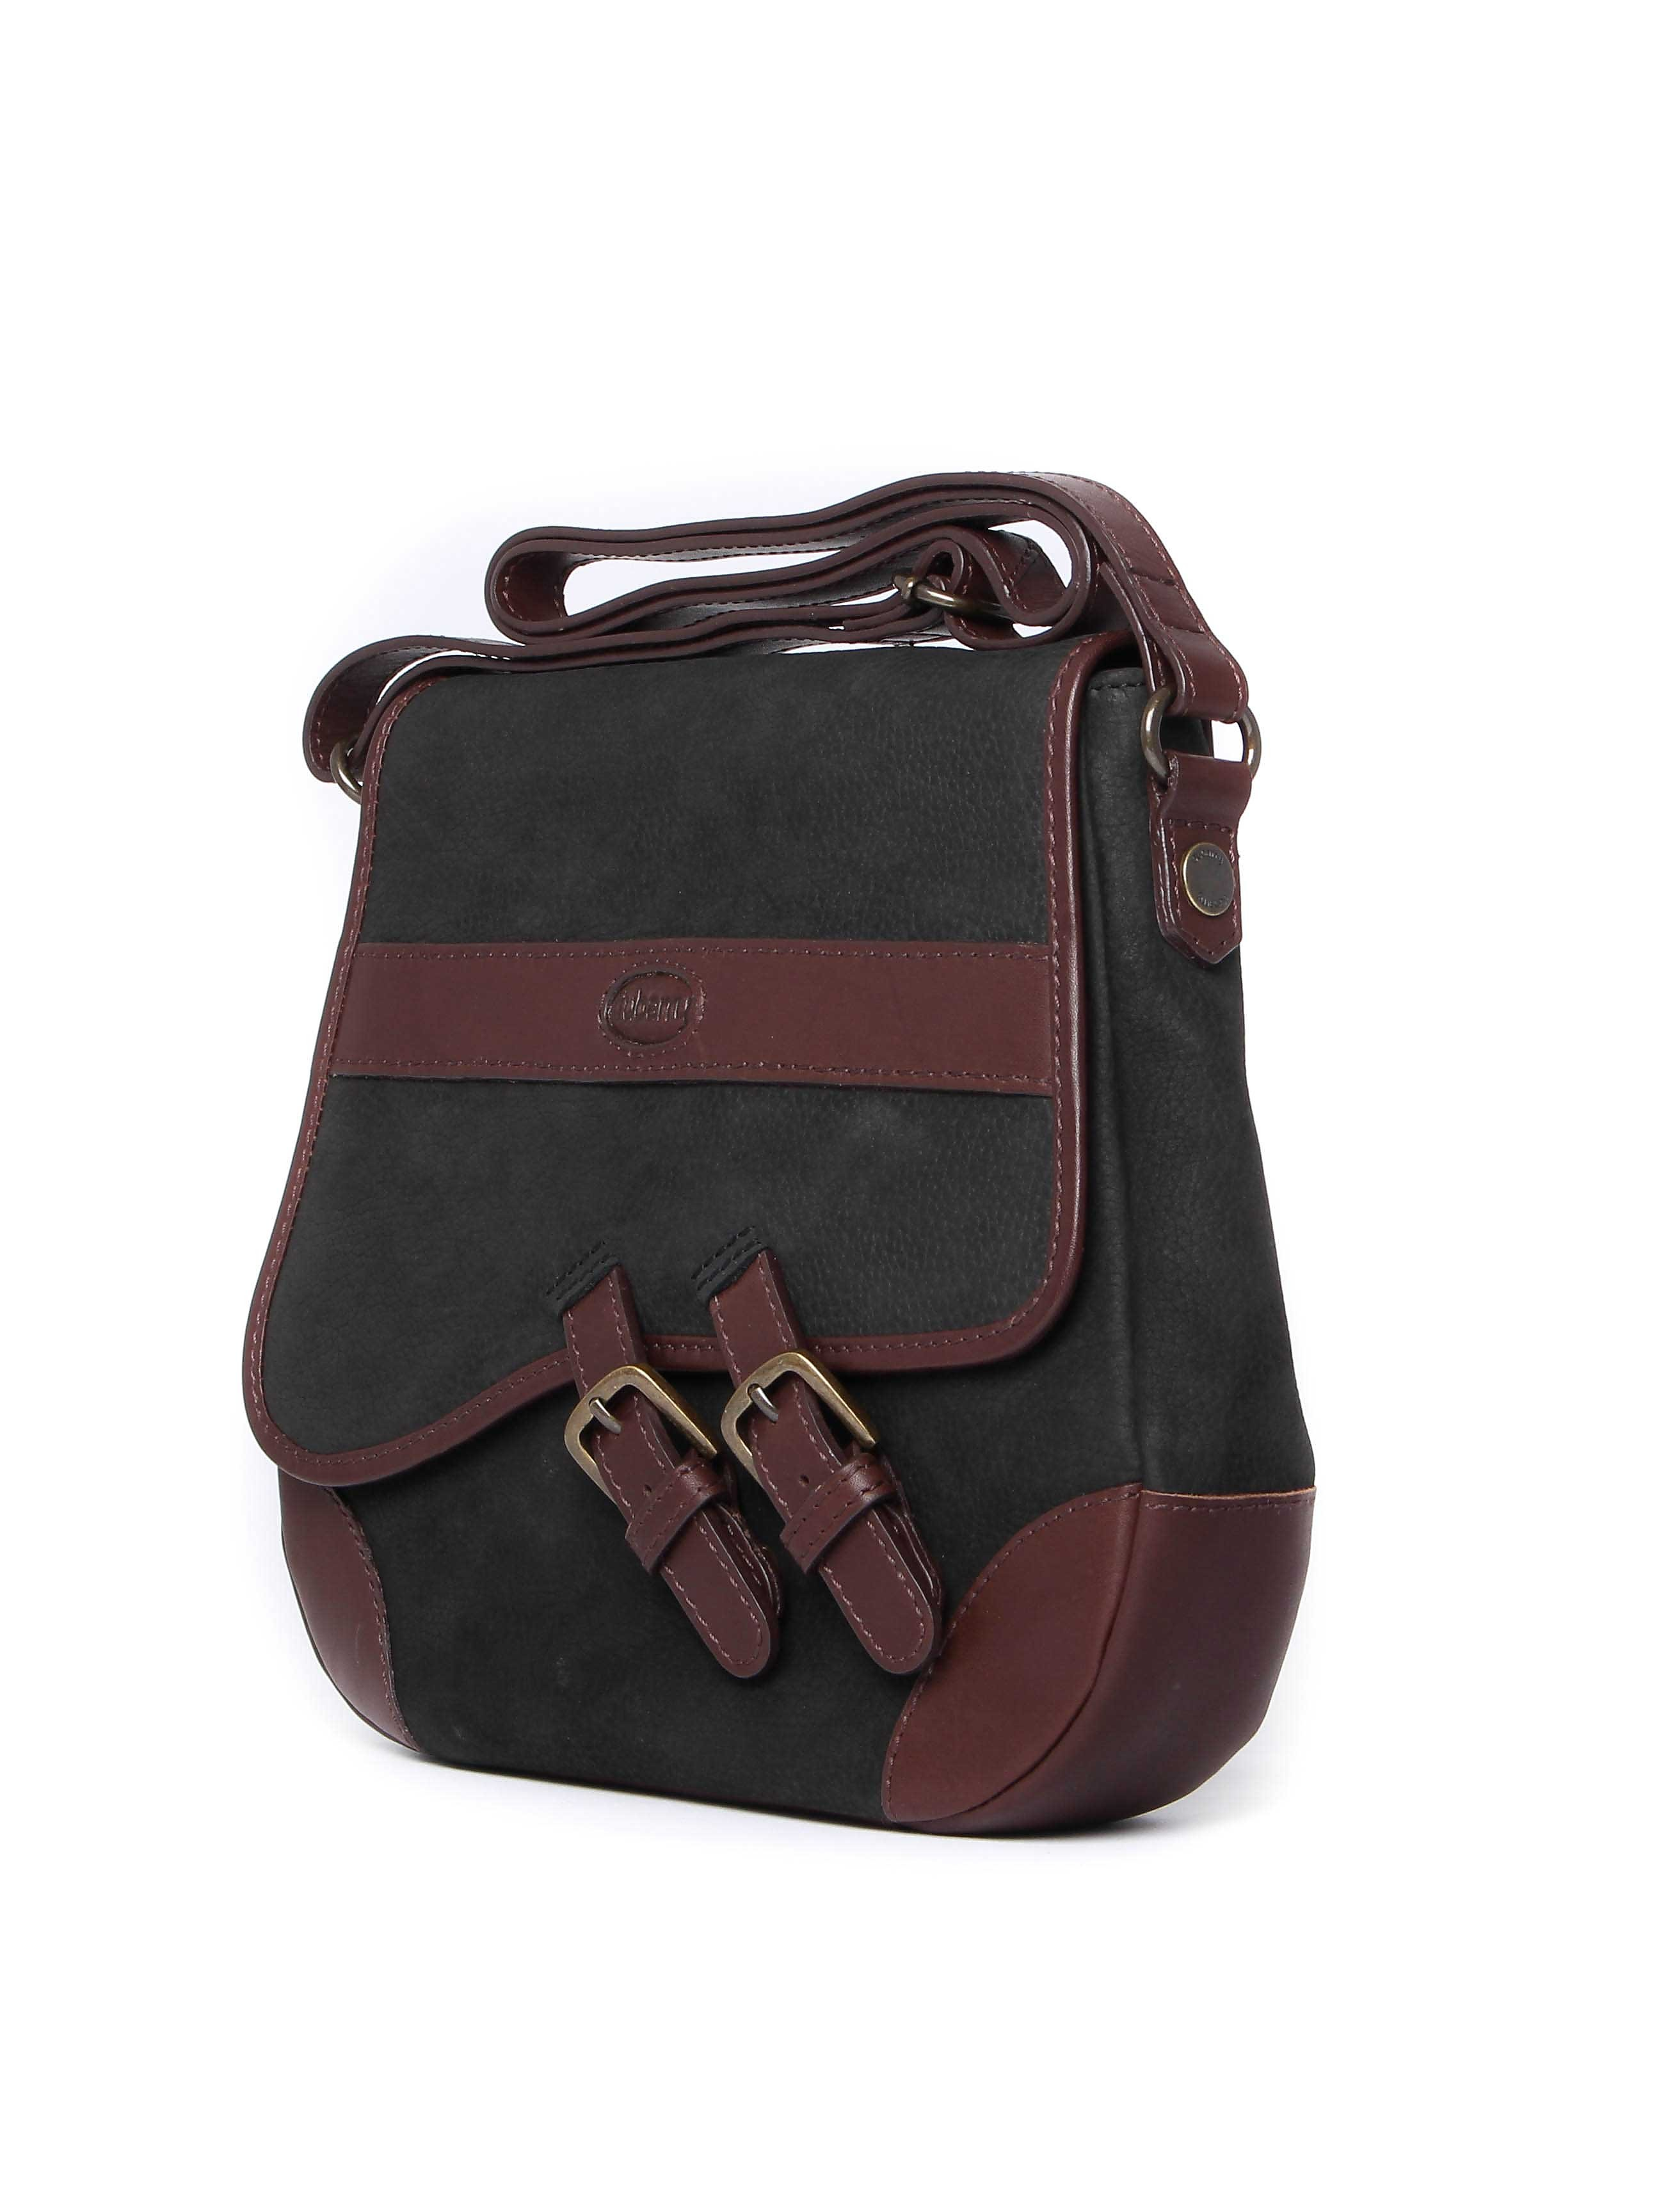 Dubarry Boyne Shoulder Bag - Black/Brown